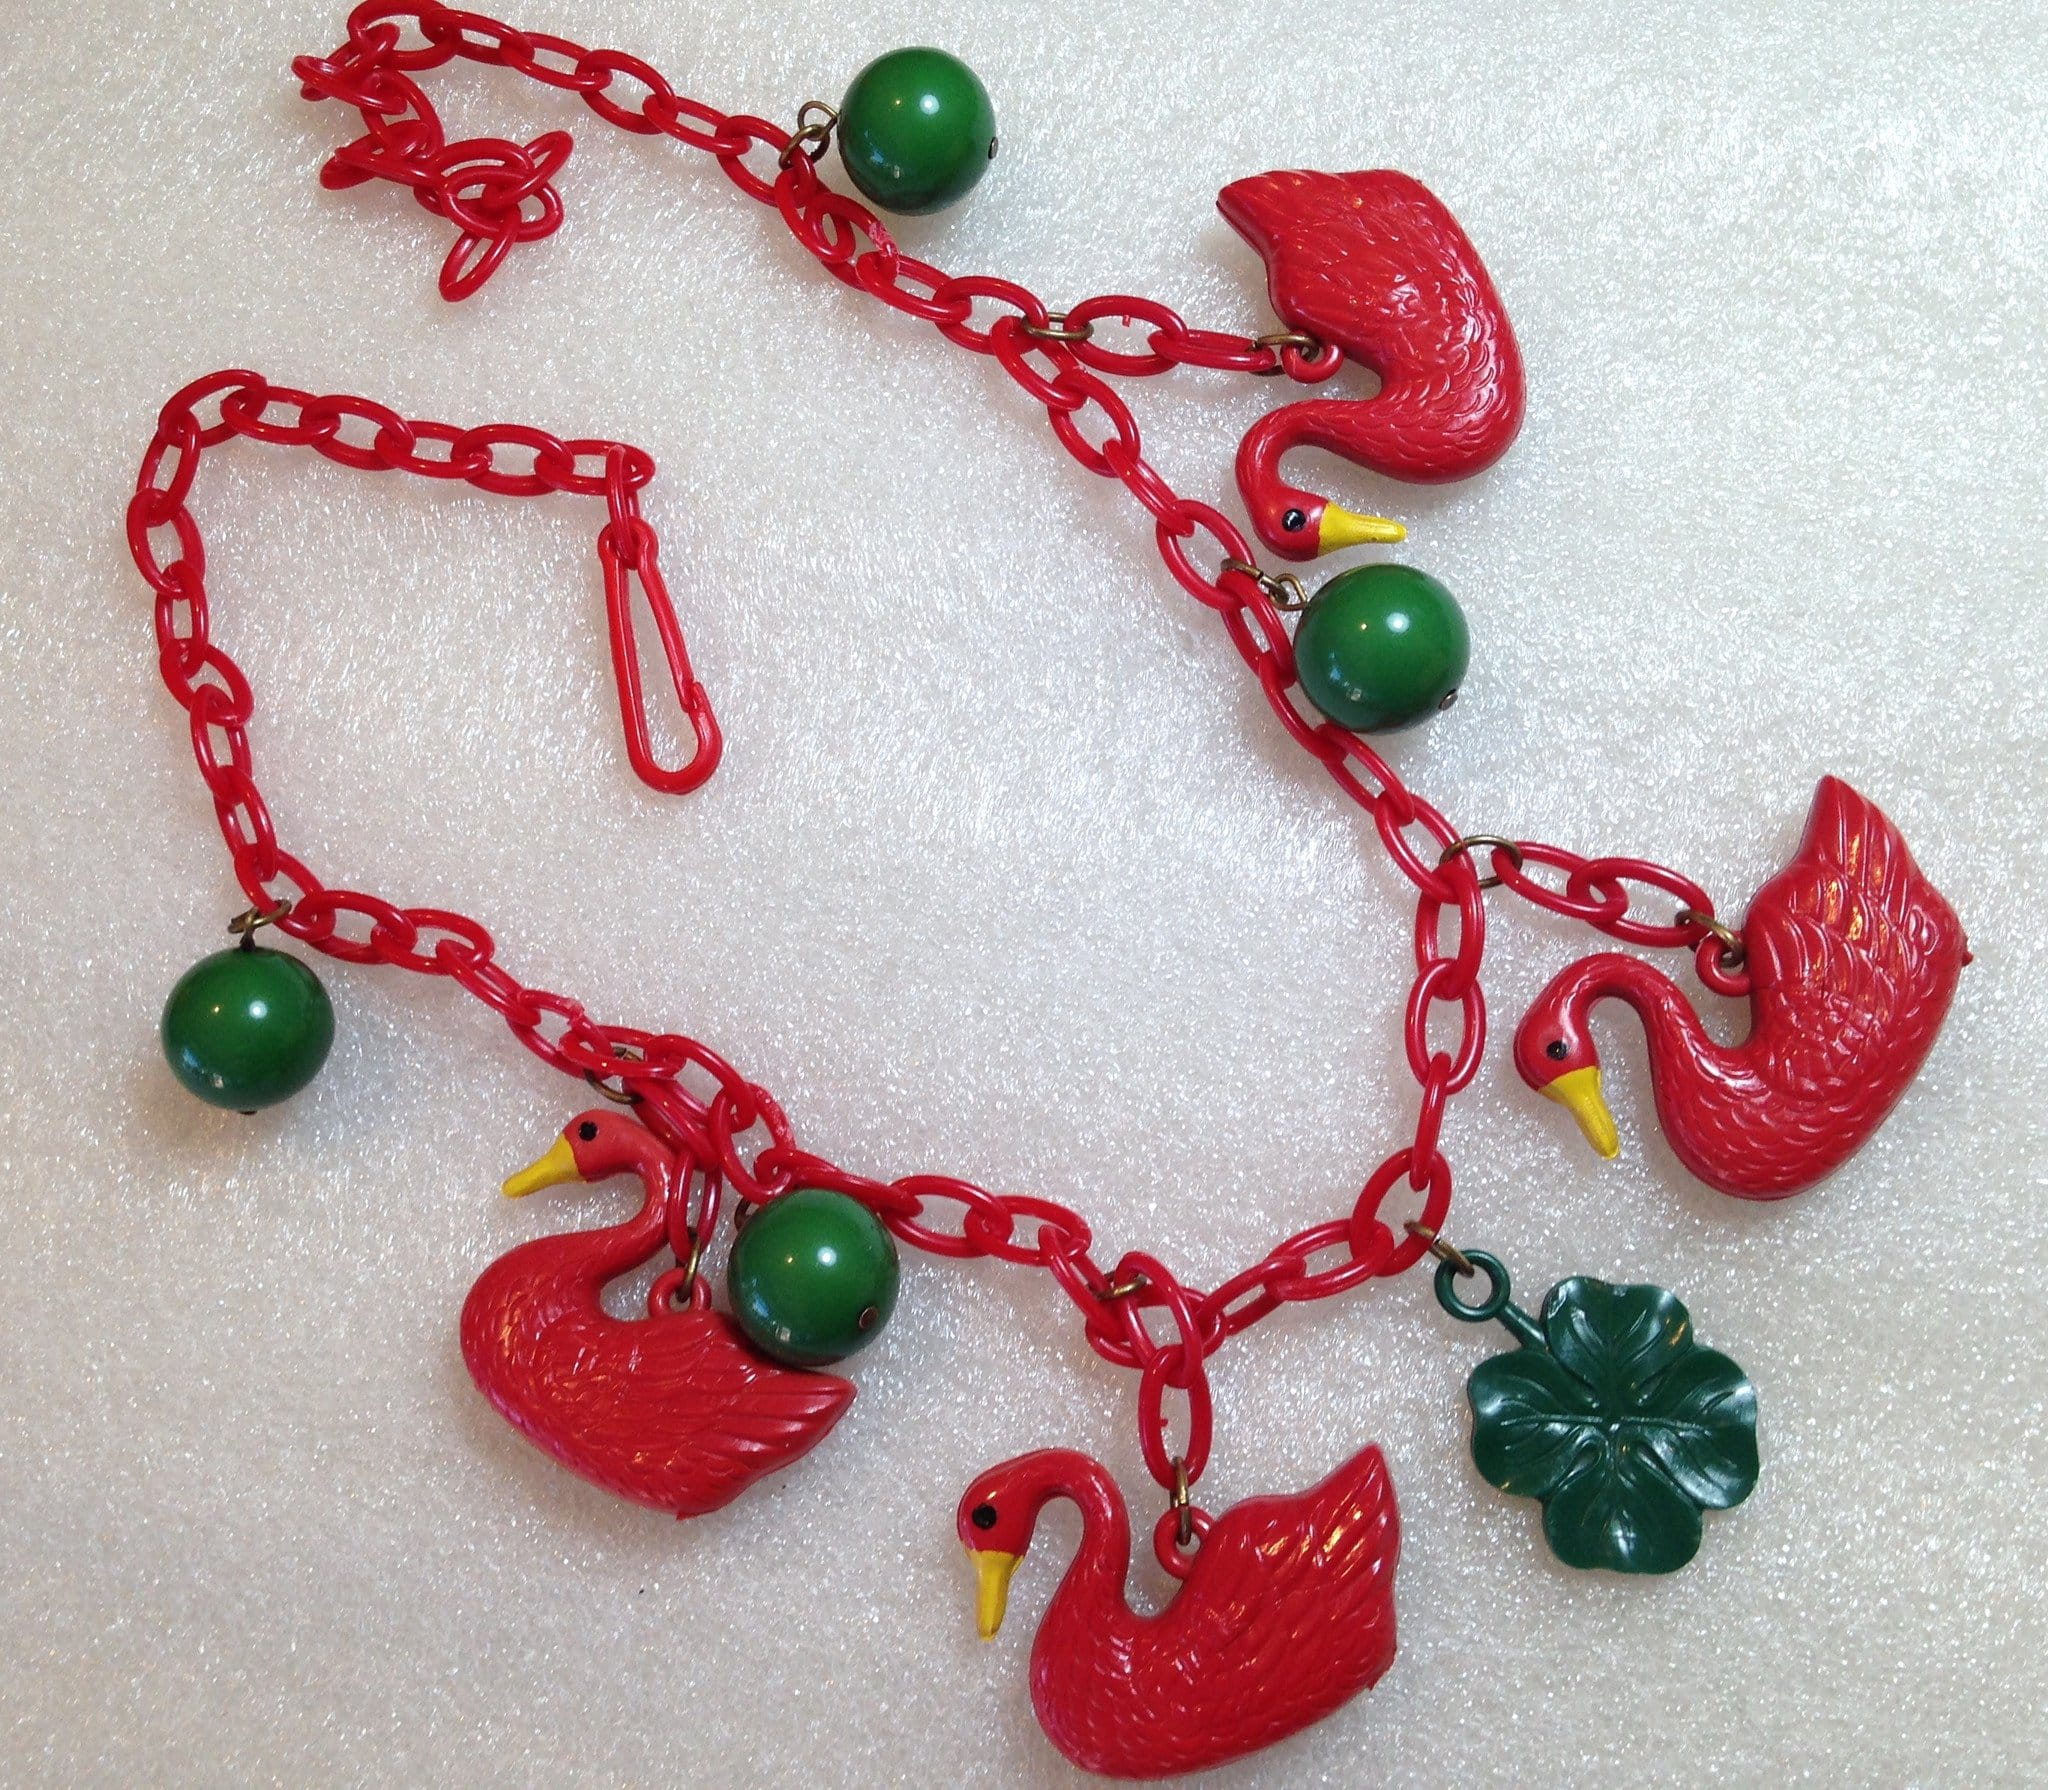 Vintage 1940's celluloid early plastic red ducks and forest green balls necklace - bakelite era